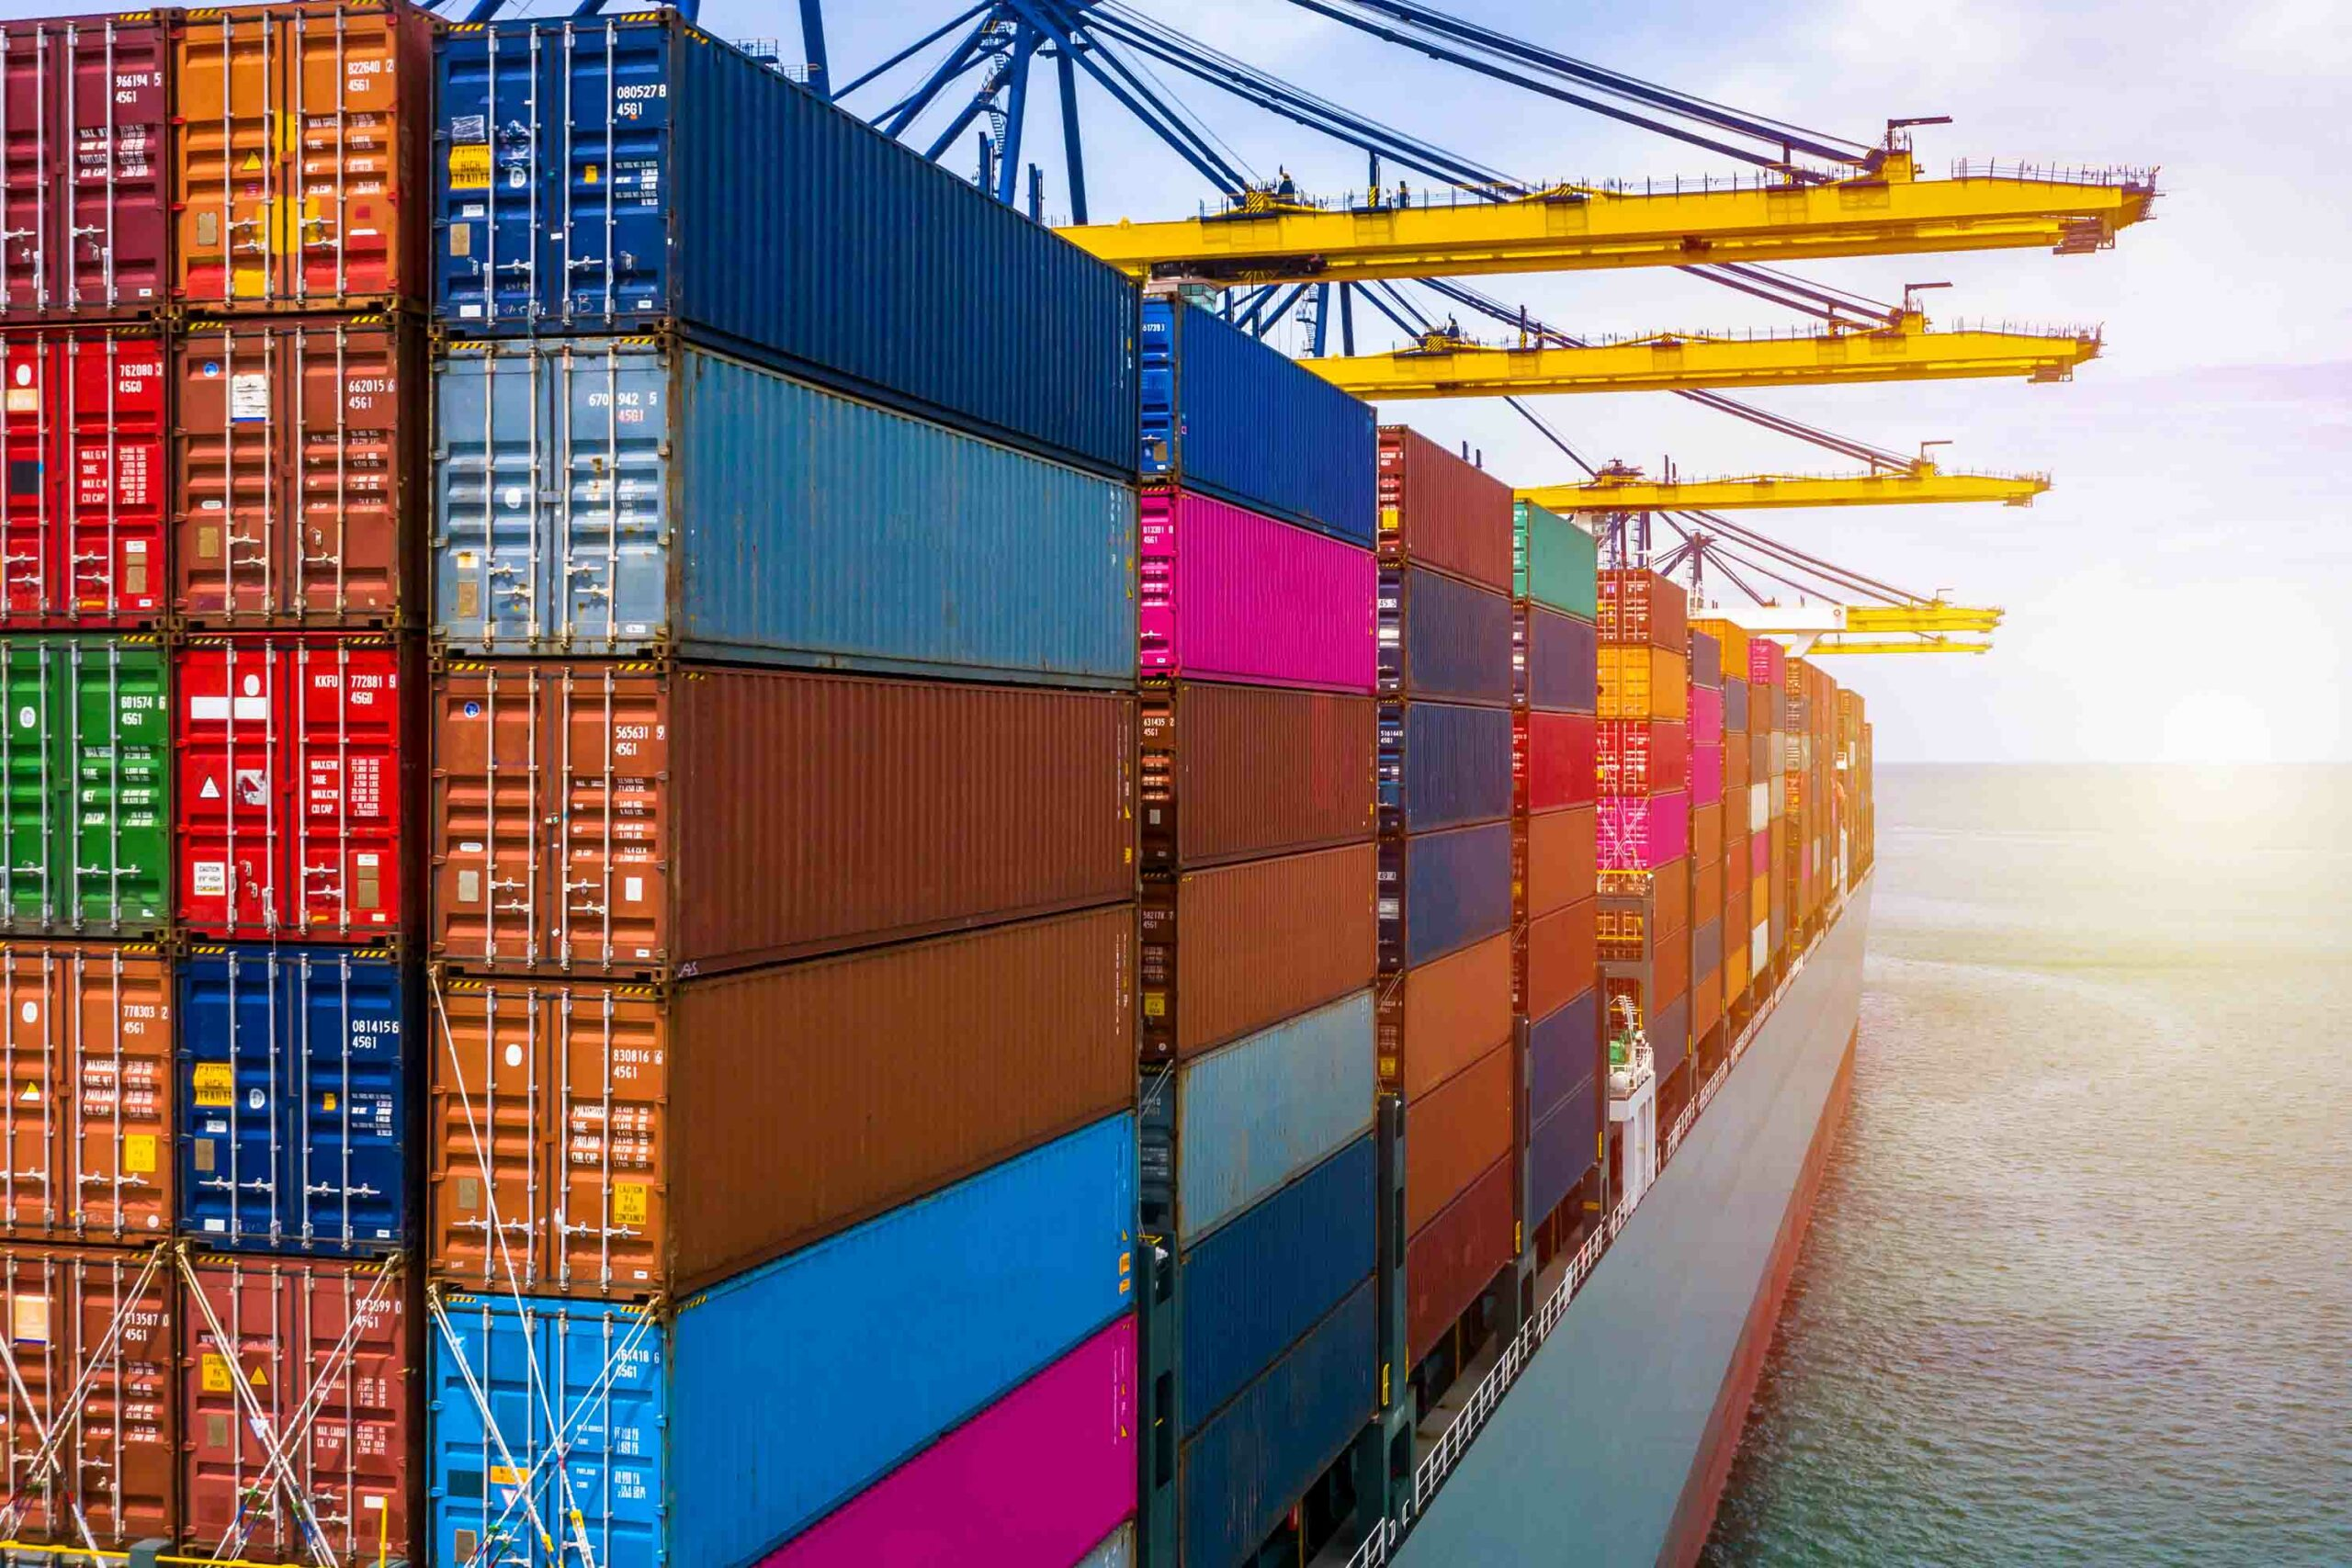 PIL starts to expand fleet again as records continue to tumble in red-hot container sector Atlas Logistic Network